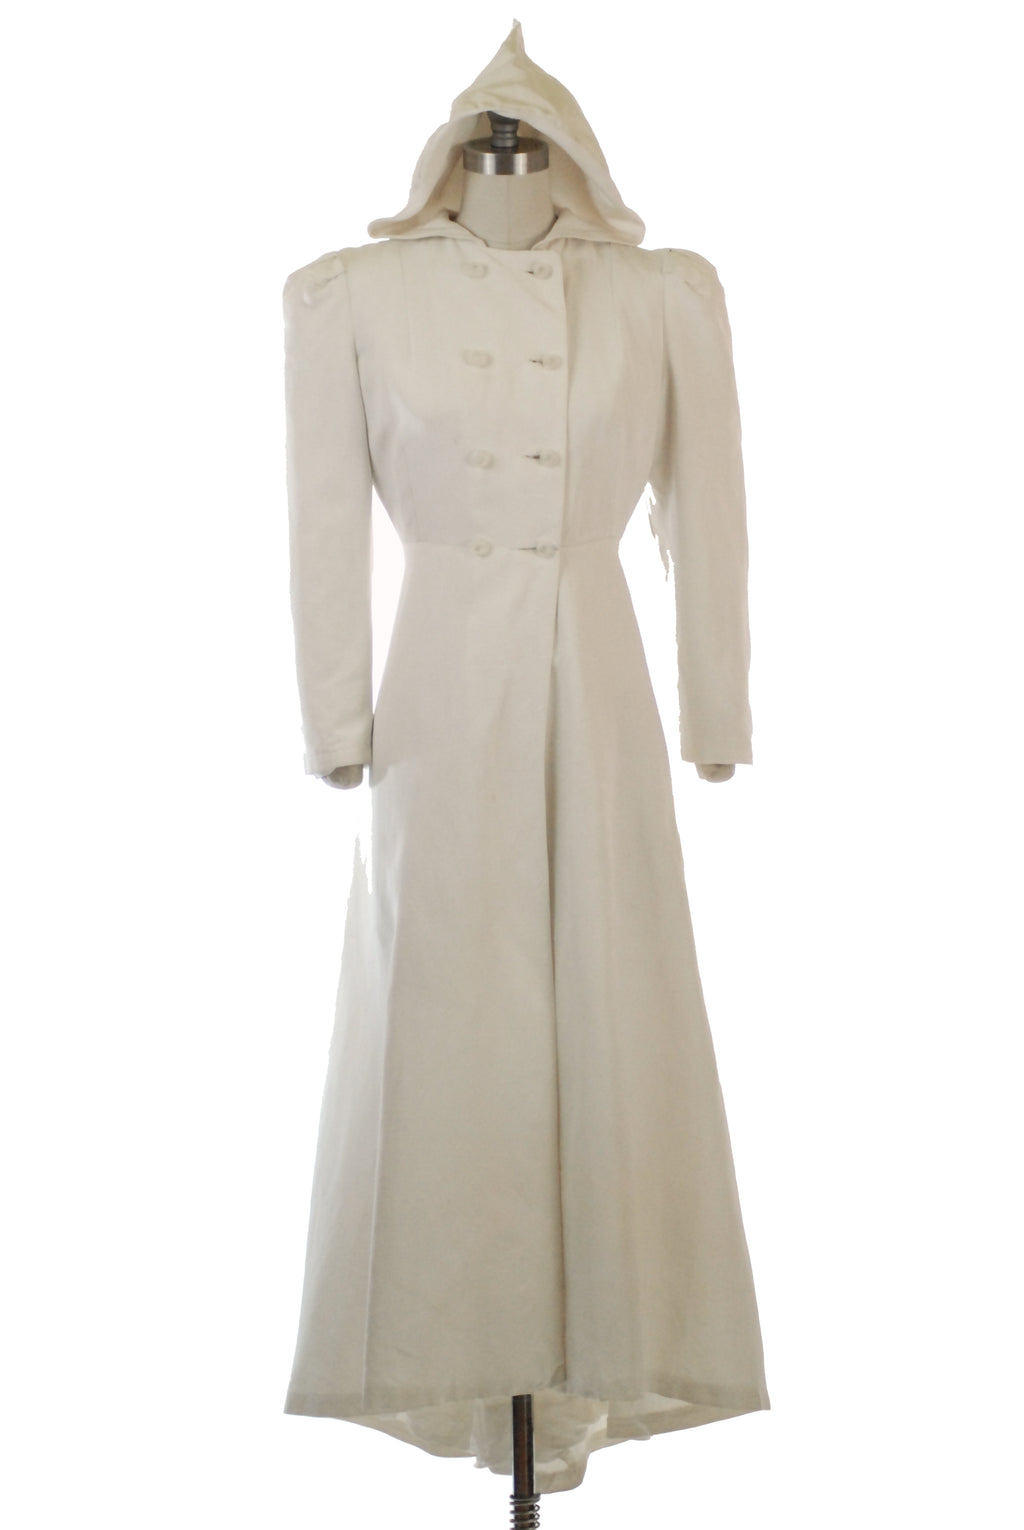 Gorgeous Late 1930s Hooded White Coat with Double Breasted Closure